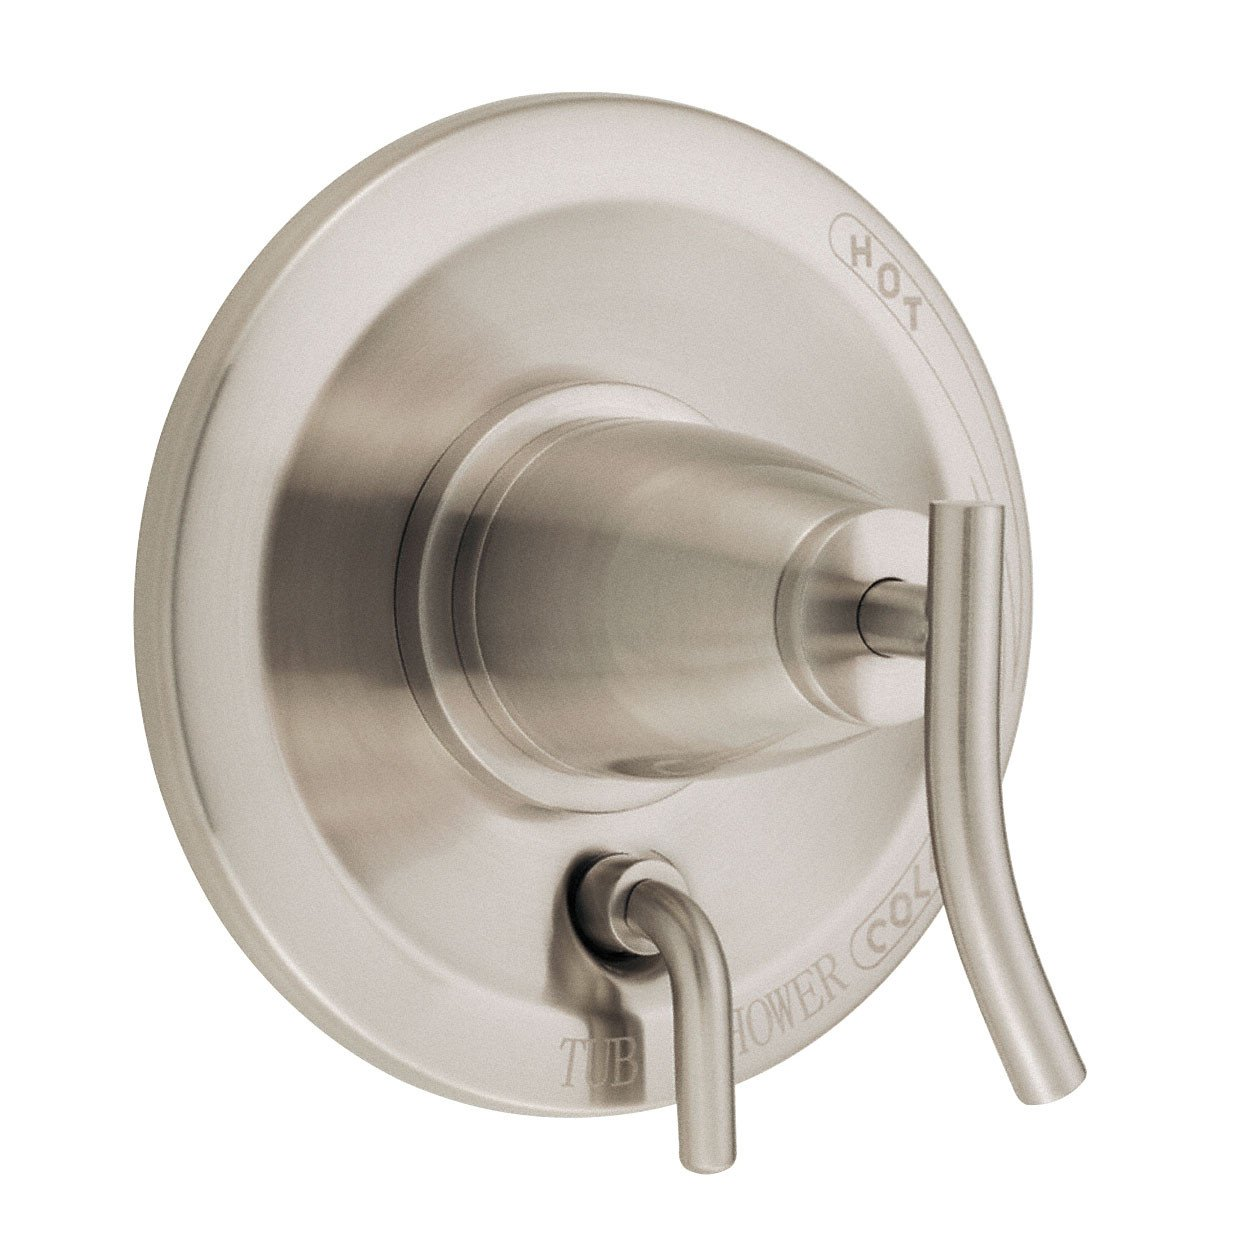 Danze Sonora Brushed Nickel Pressure Balance Shower Control with Diverter INCLUDES Rough-in Valve